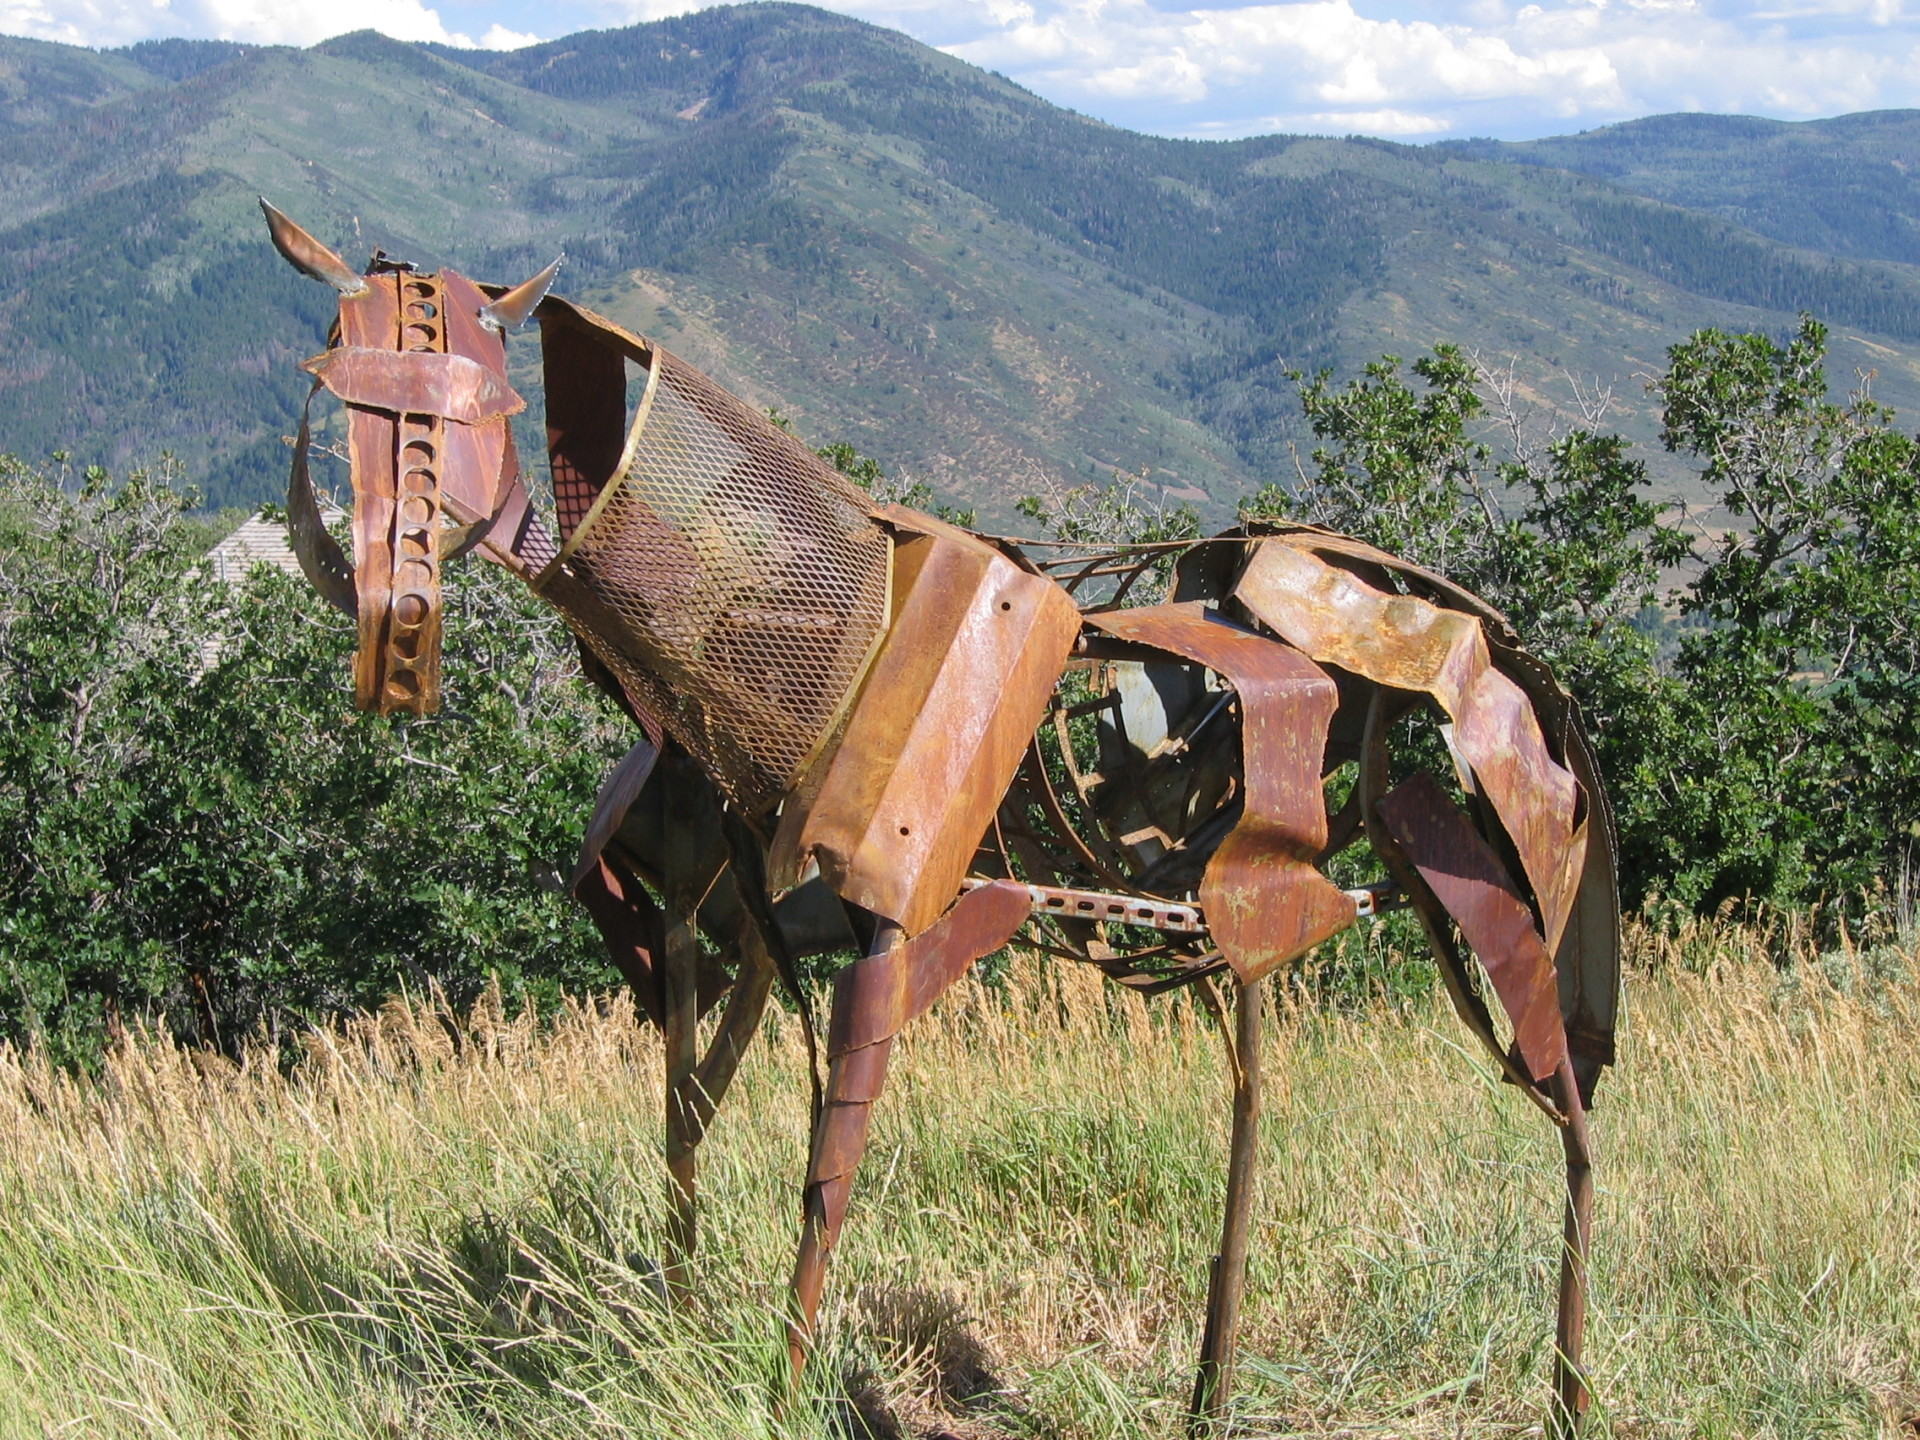 Life size horse sculpture, recycled steel, Utah, Rusty Croft, Carmel California